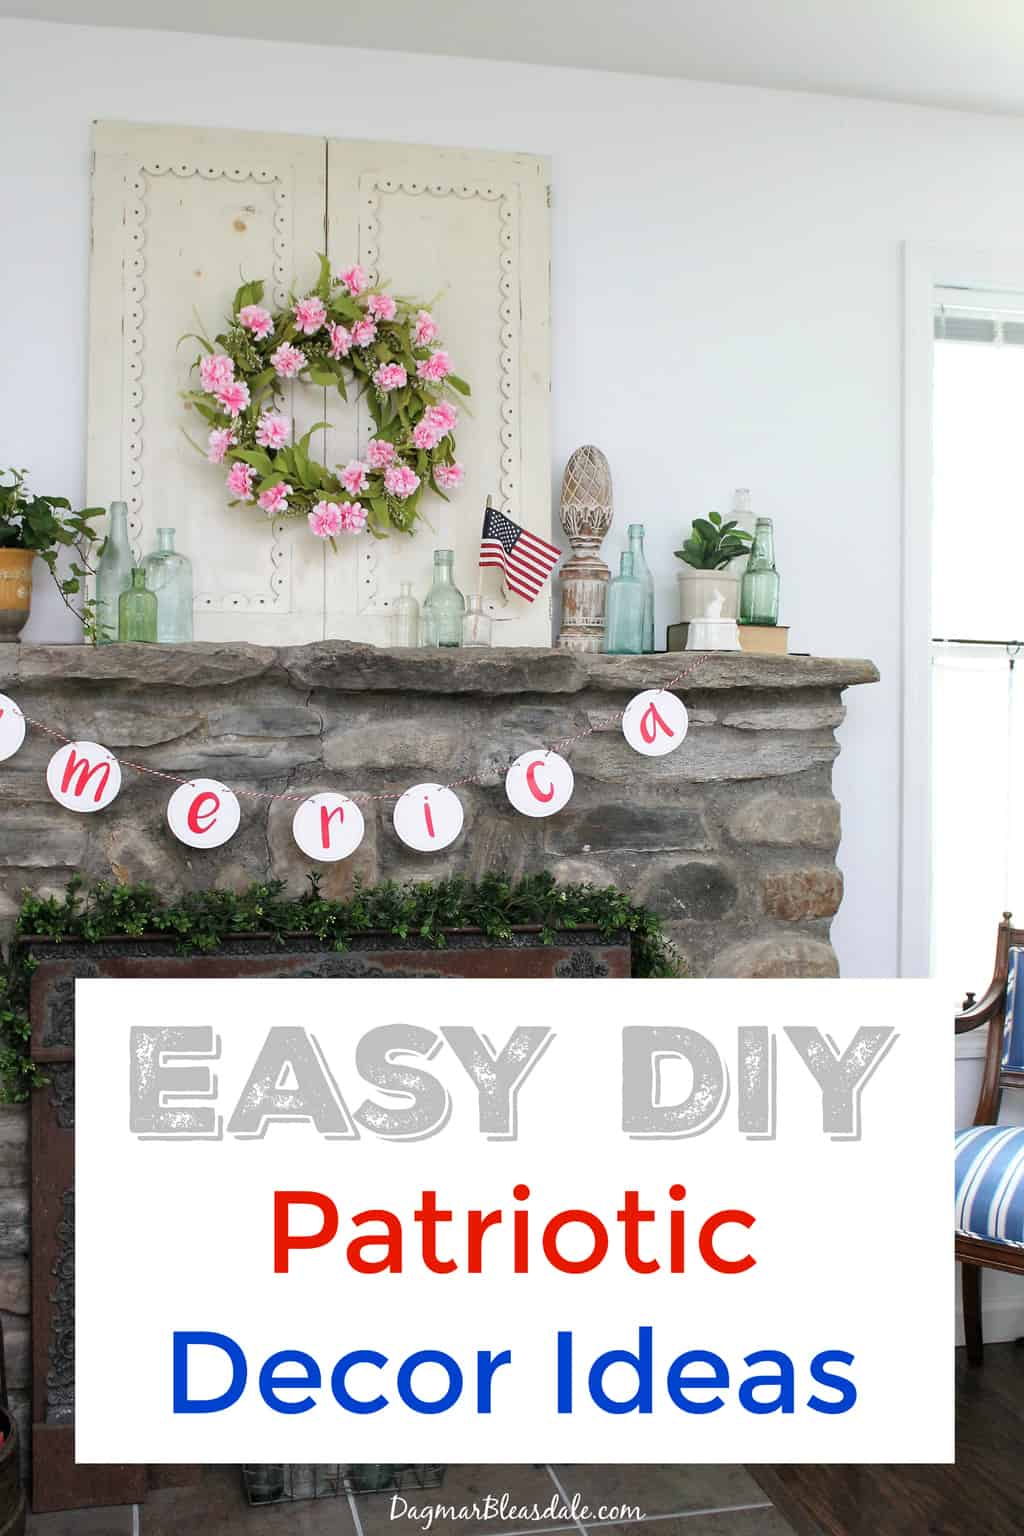 4th of july decorations banners flags and diy ideas for Mural decoration ideas